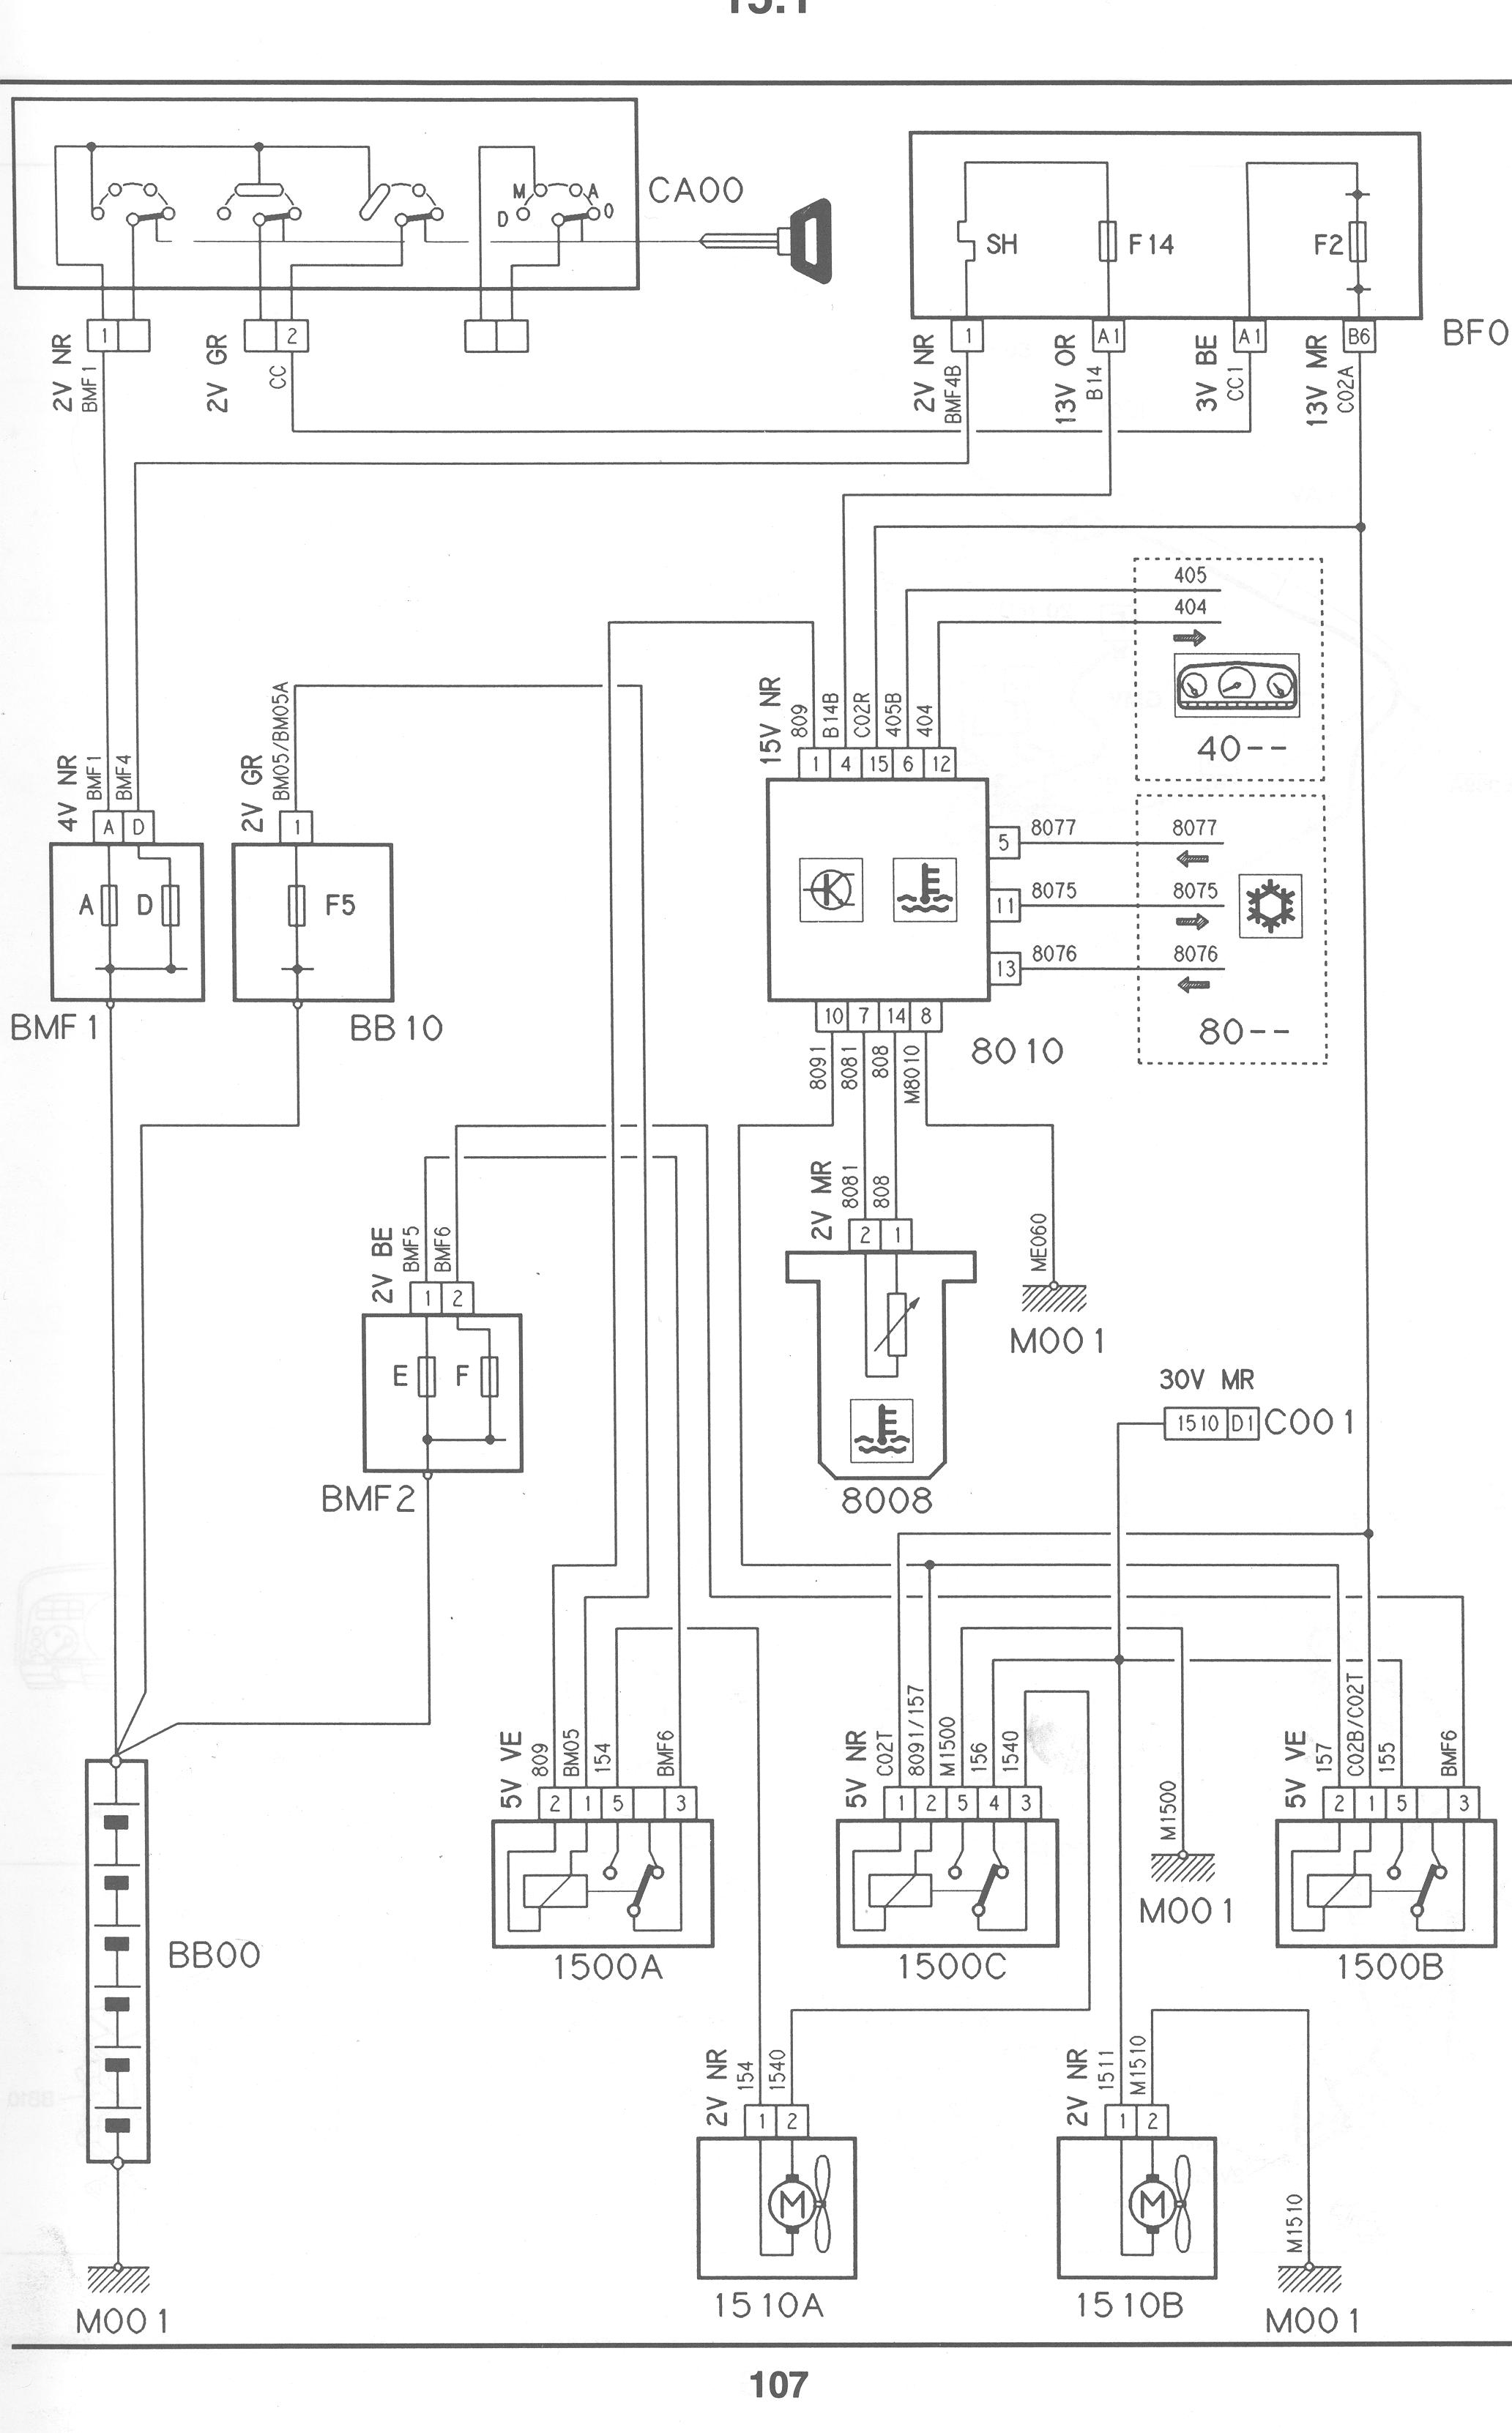 2011 ford f750 fuse box diagram 2011 manual repair wiring and engine citroen berlingo fuse box diagram wiring